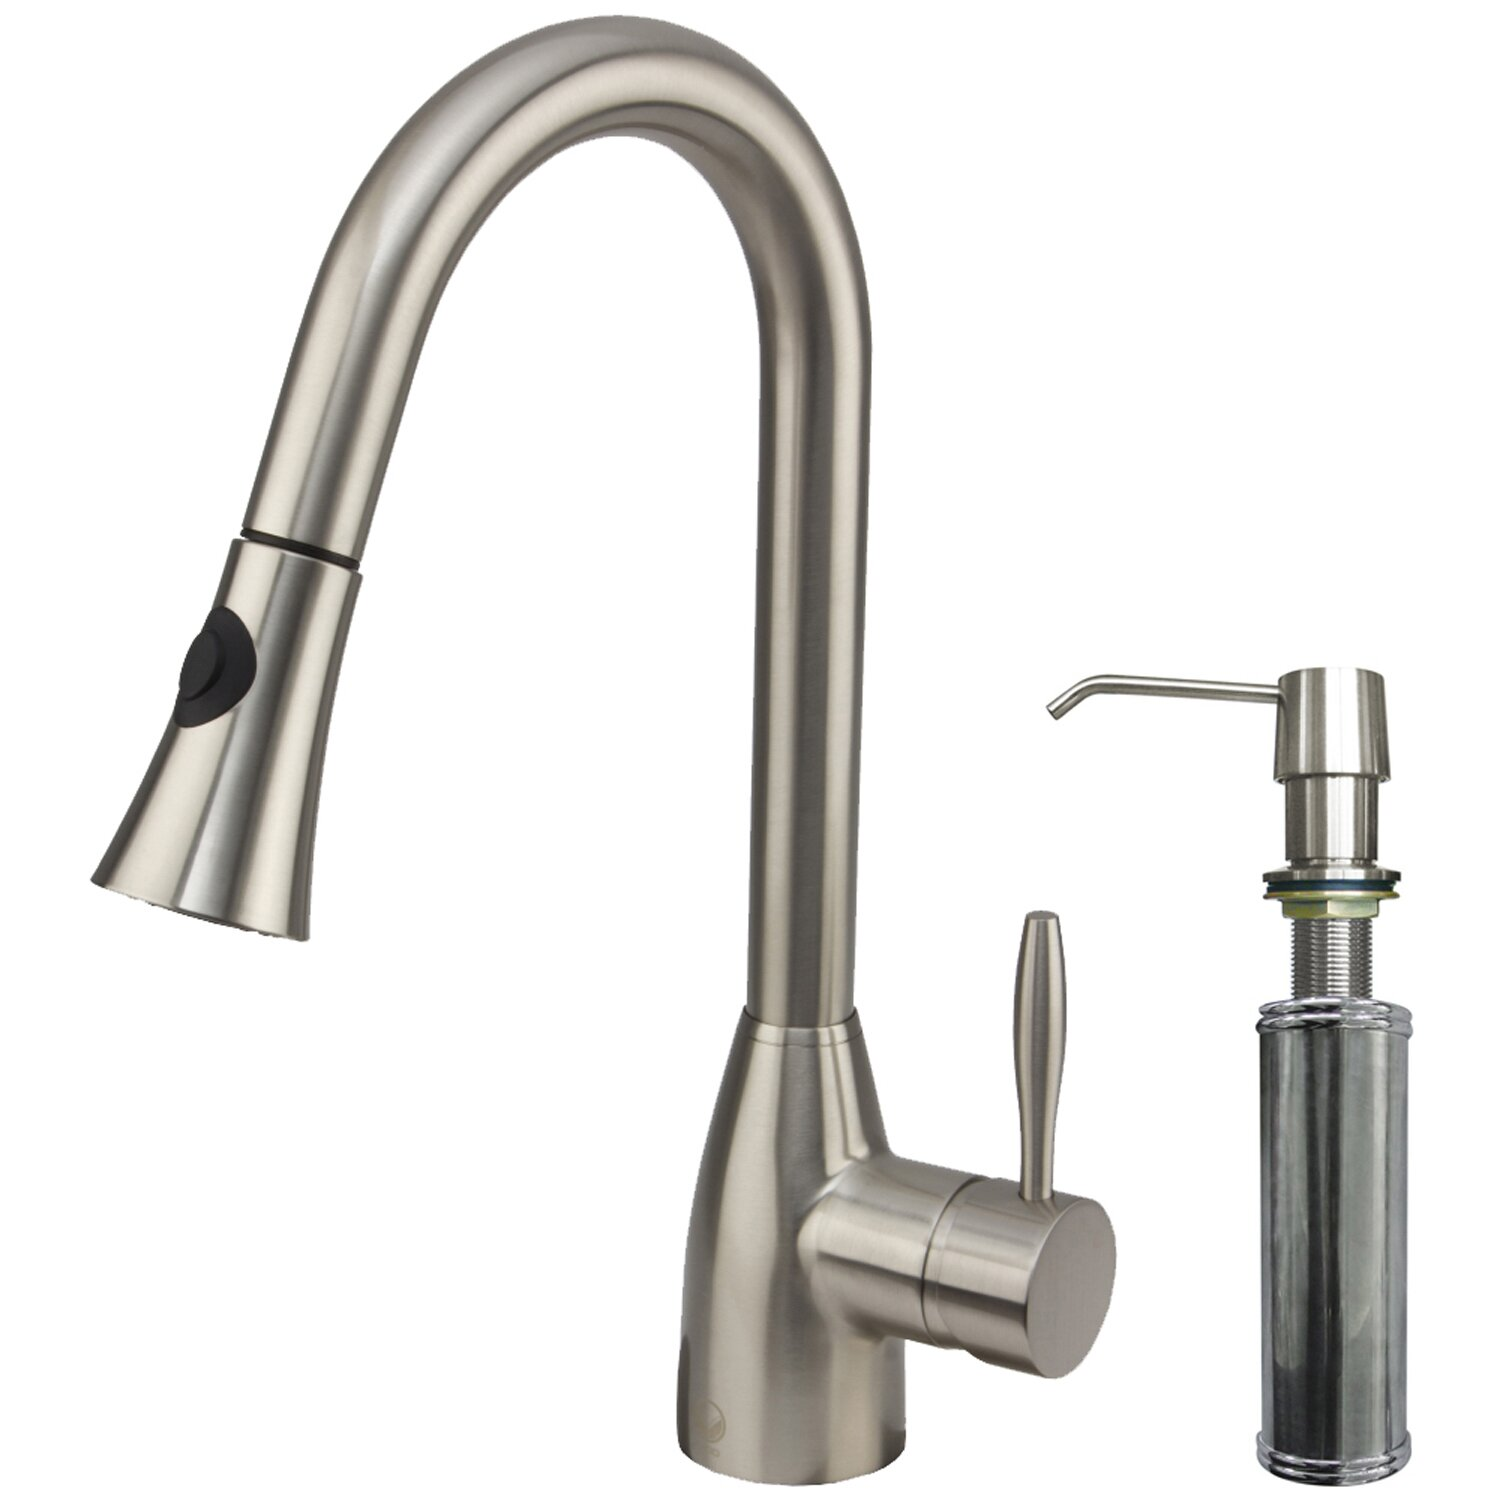 vigo kitchen faucet vigo aylesbury single handle pull down spray kitchen faucet with soap dispenser reviews wayfair 4863